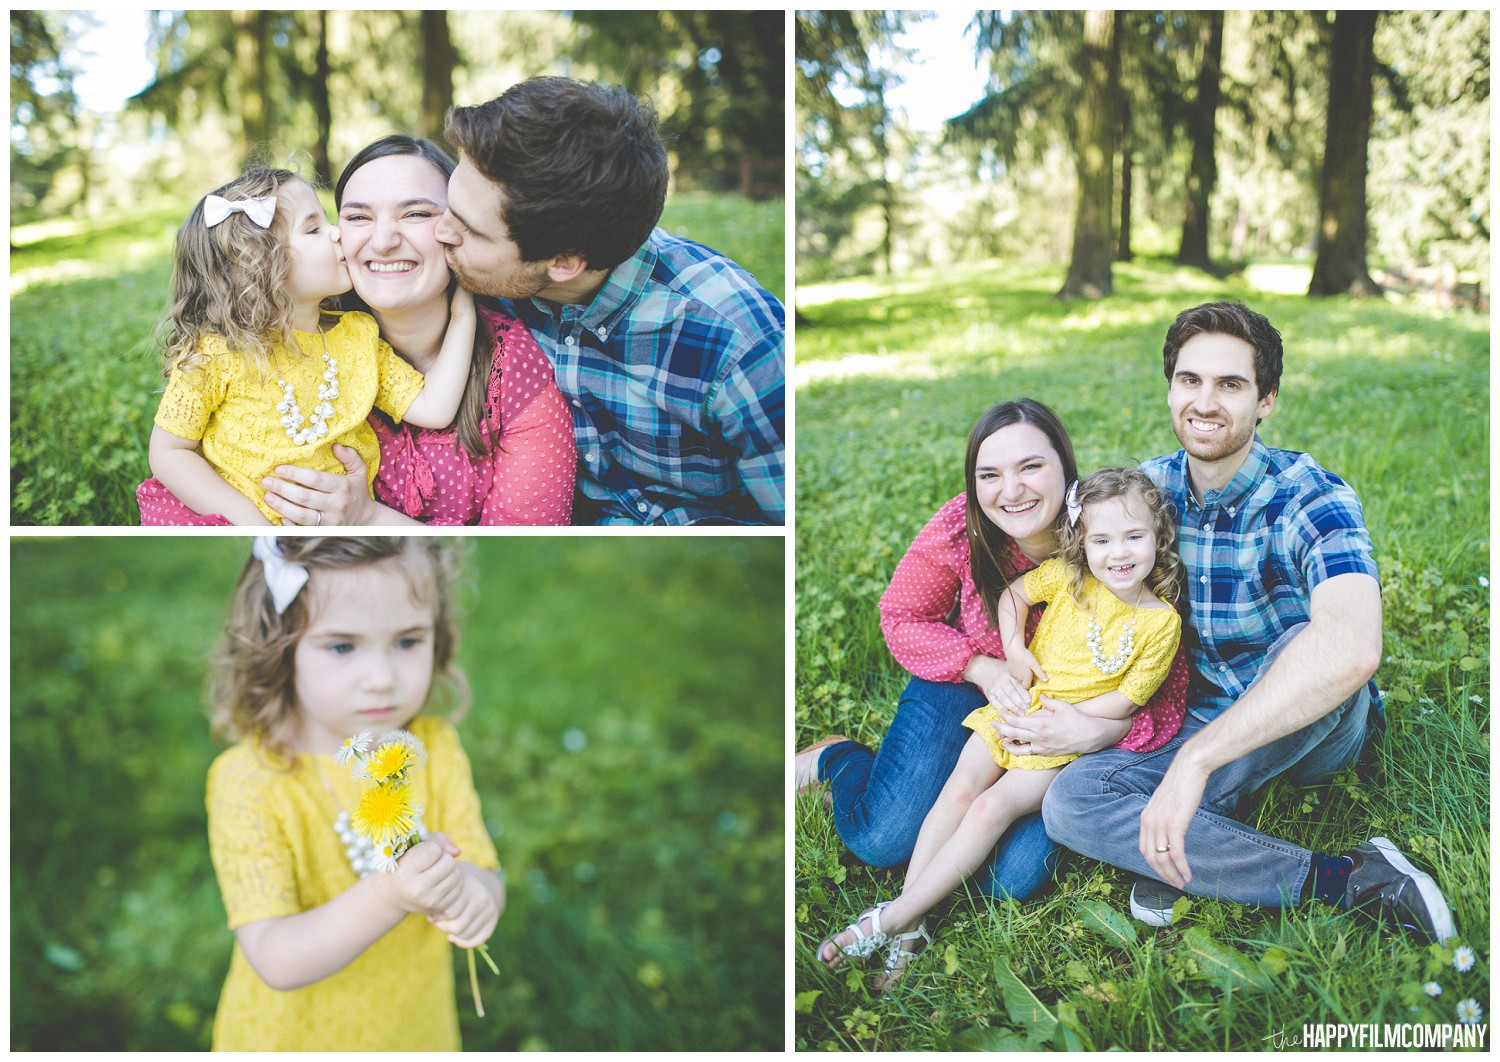 Spring Family Adventure- the Happy Film Company - Seattle Family Photography